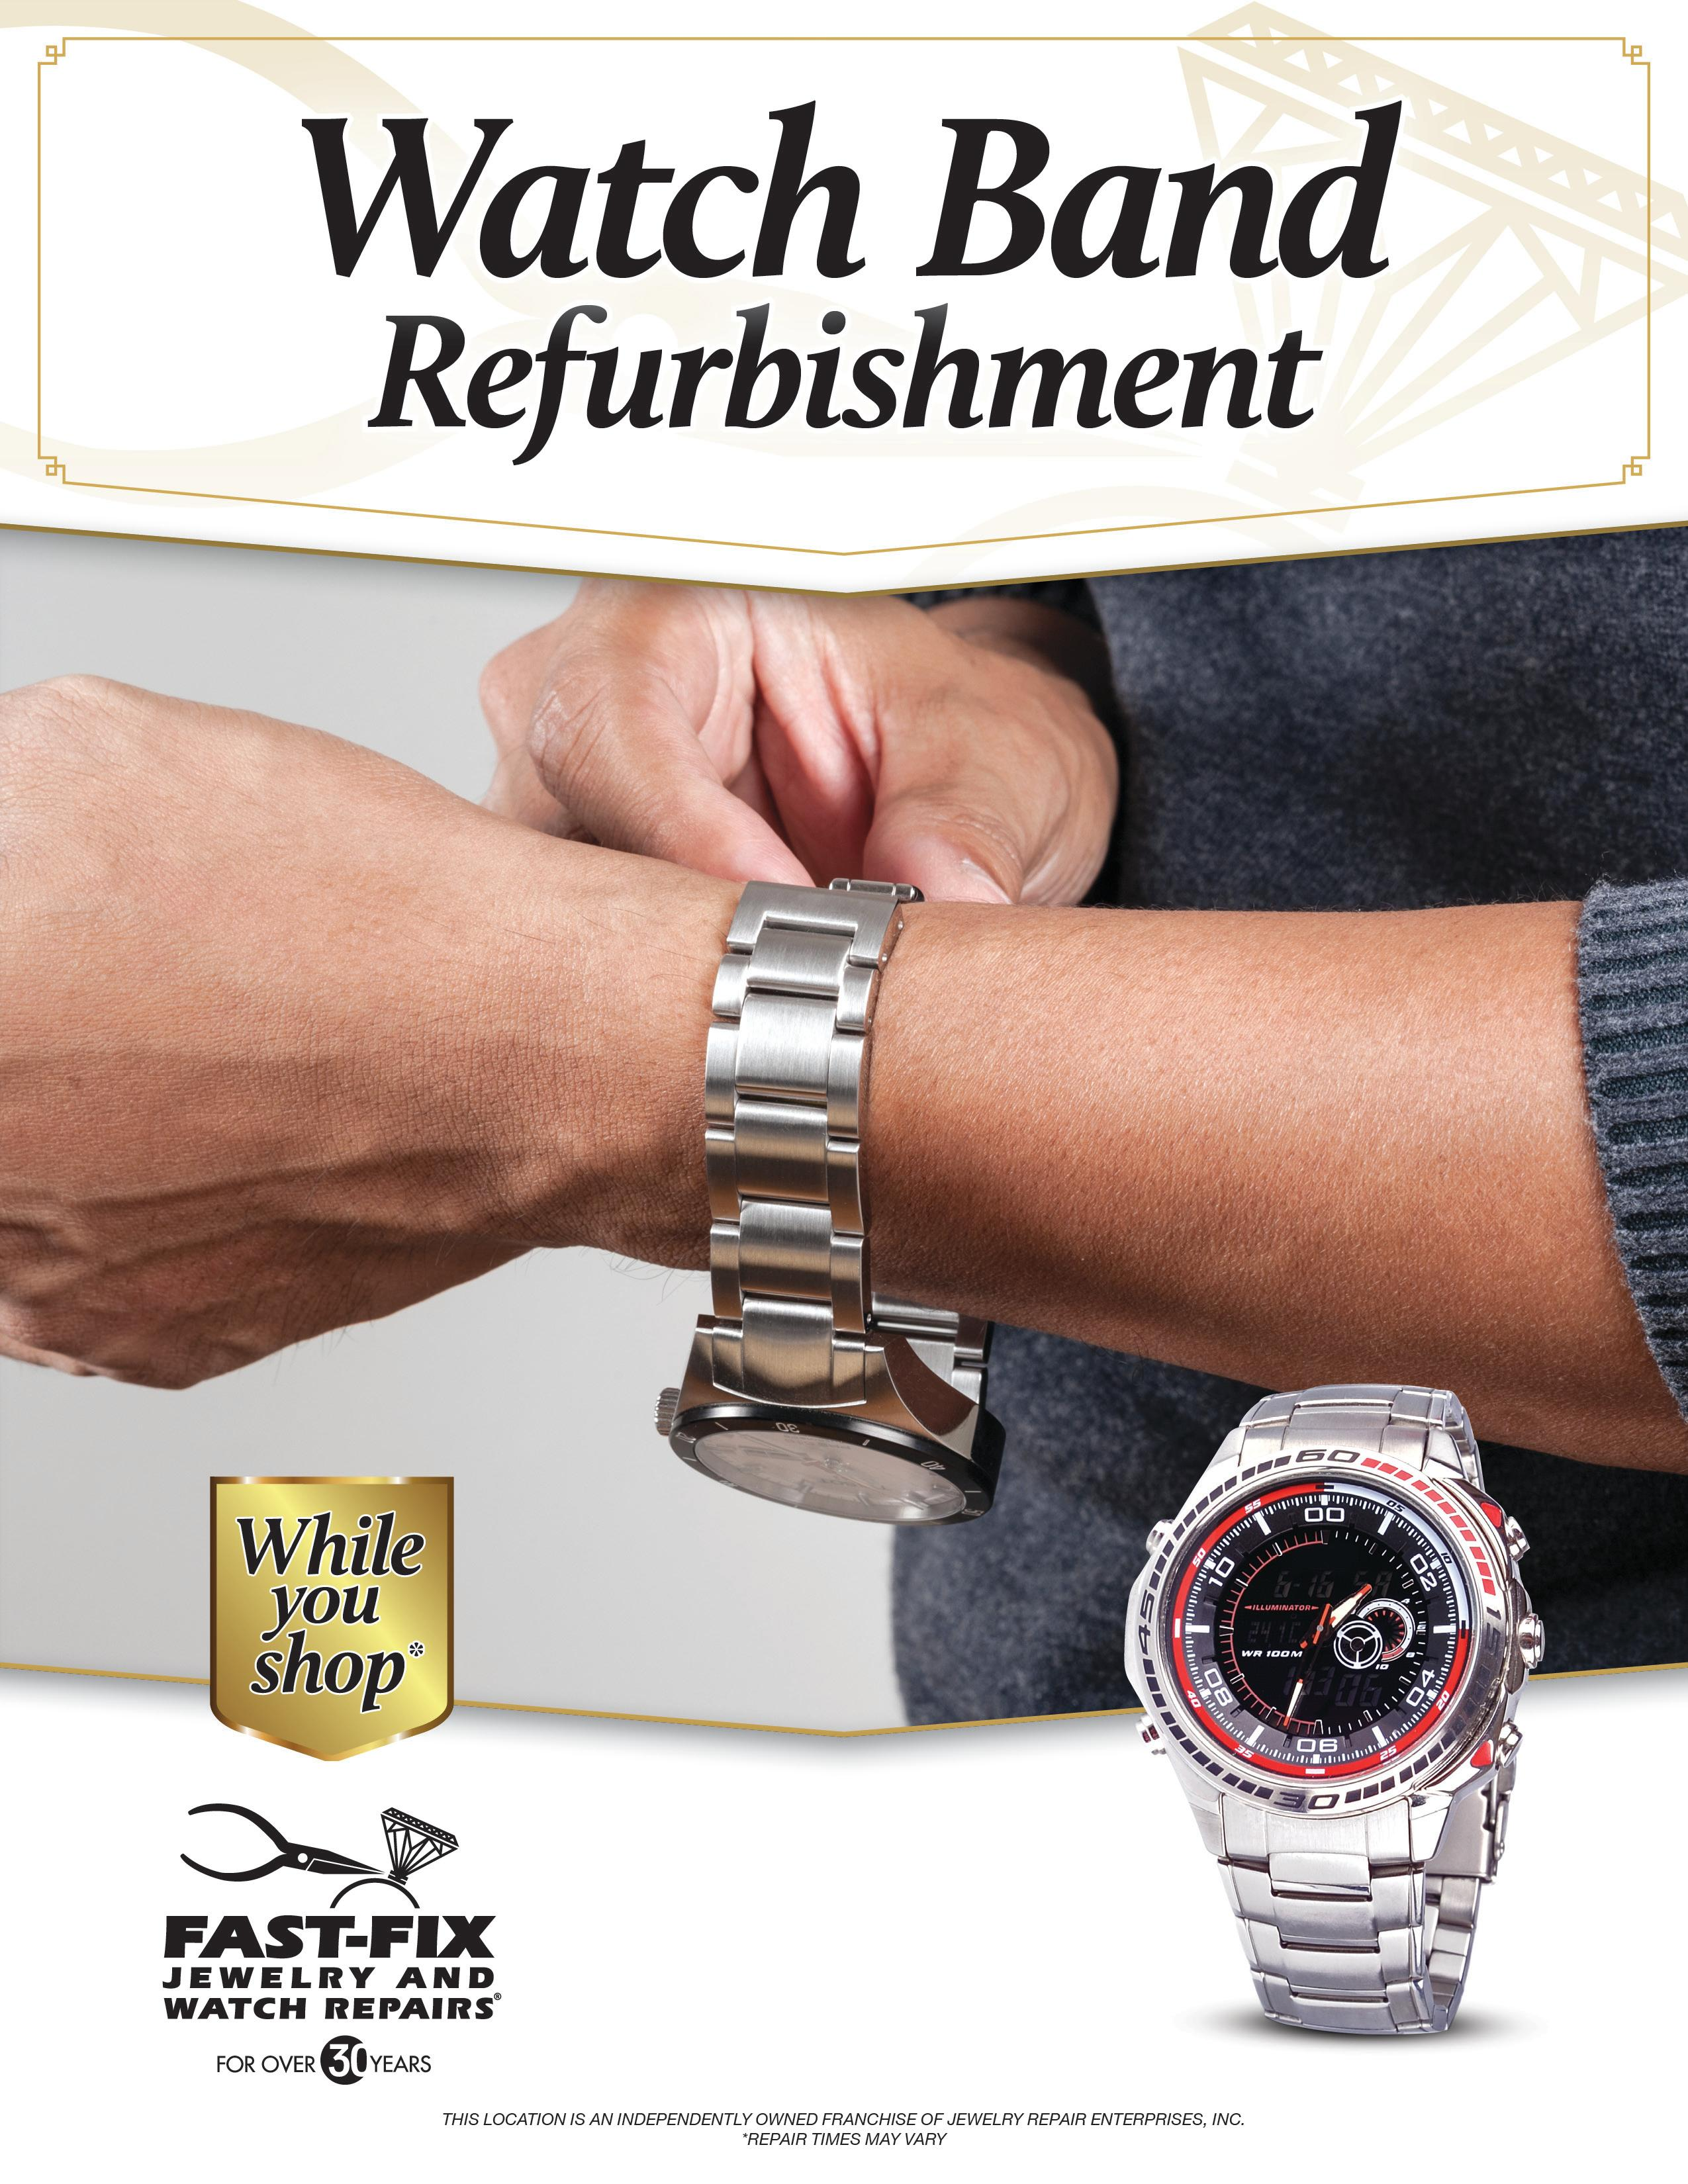 Fast fix jewelry watch repairs irvine in irvine ca for Fast fix jewelry repair